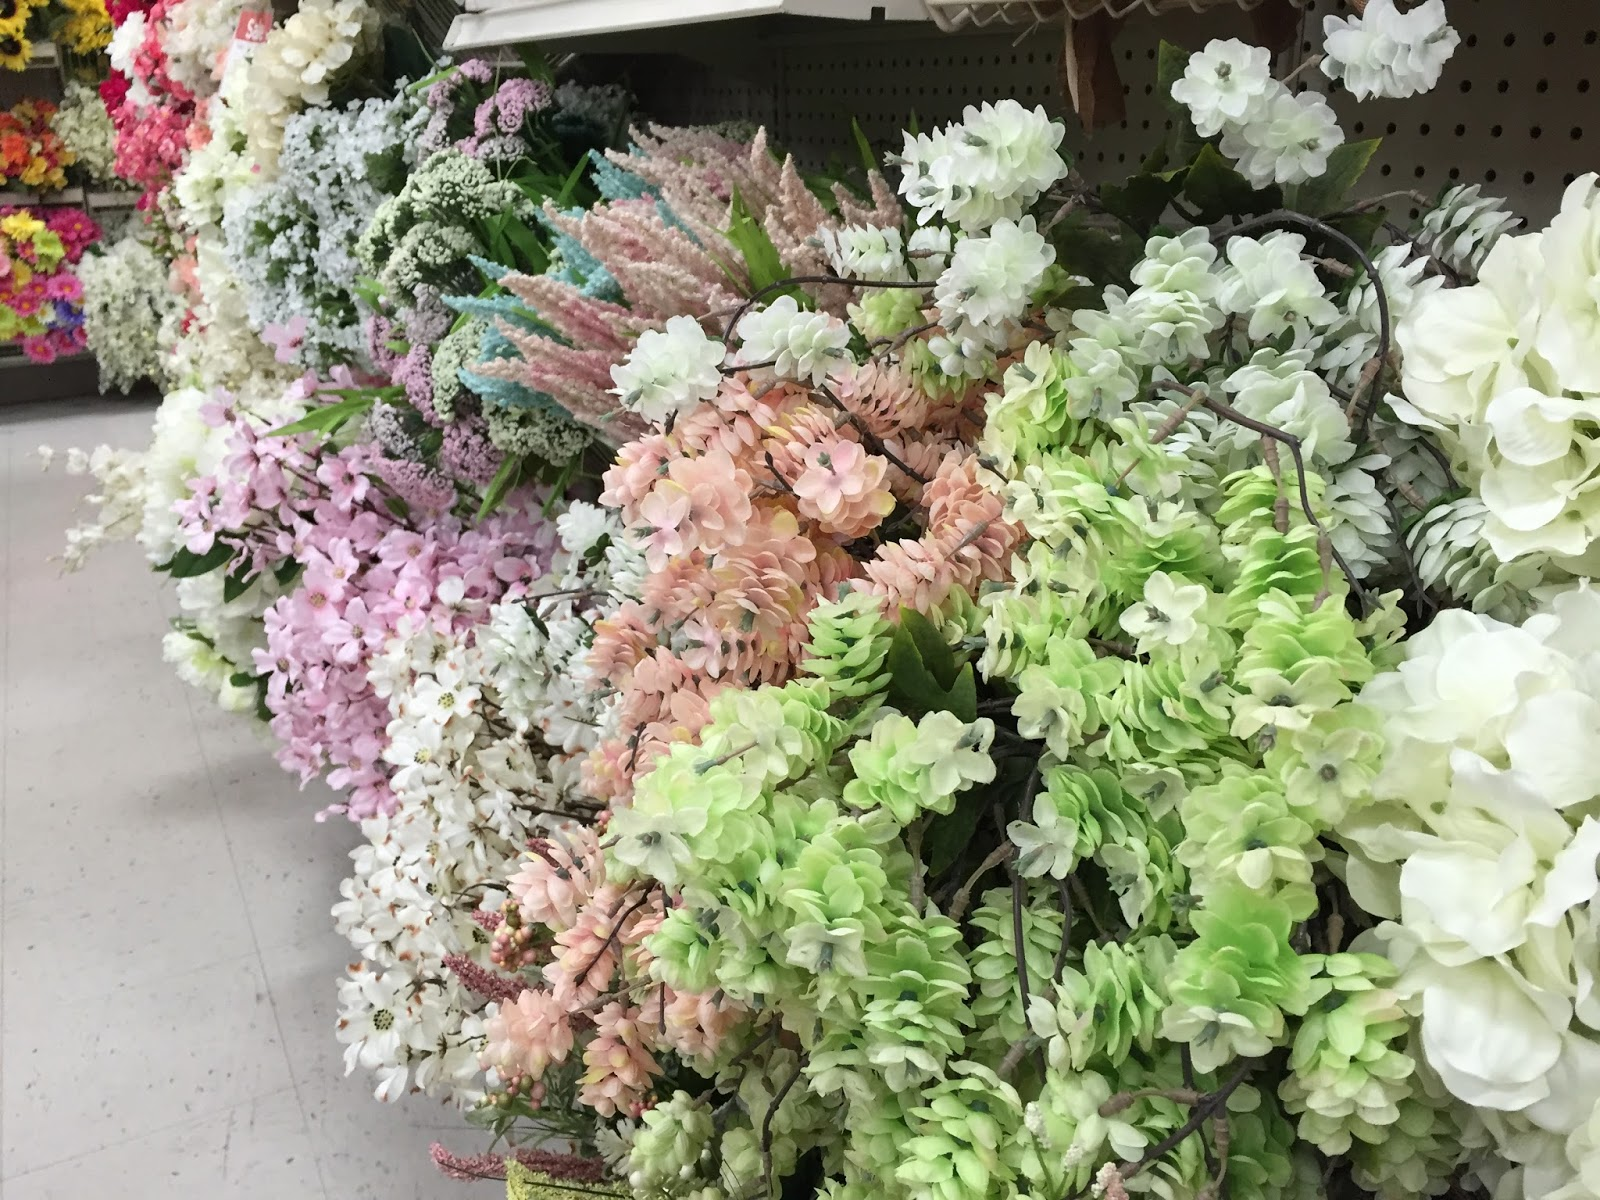 If You Are Already Chomping At The Bit For Spring, Take A Gander At These  Beautiful Spring Blooms At Michaelu0027s. They Are Gorgeous And Yes, They Are  Also On ...